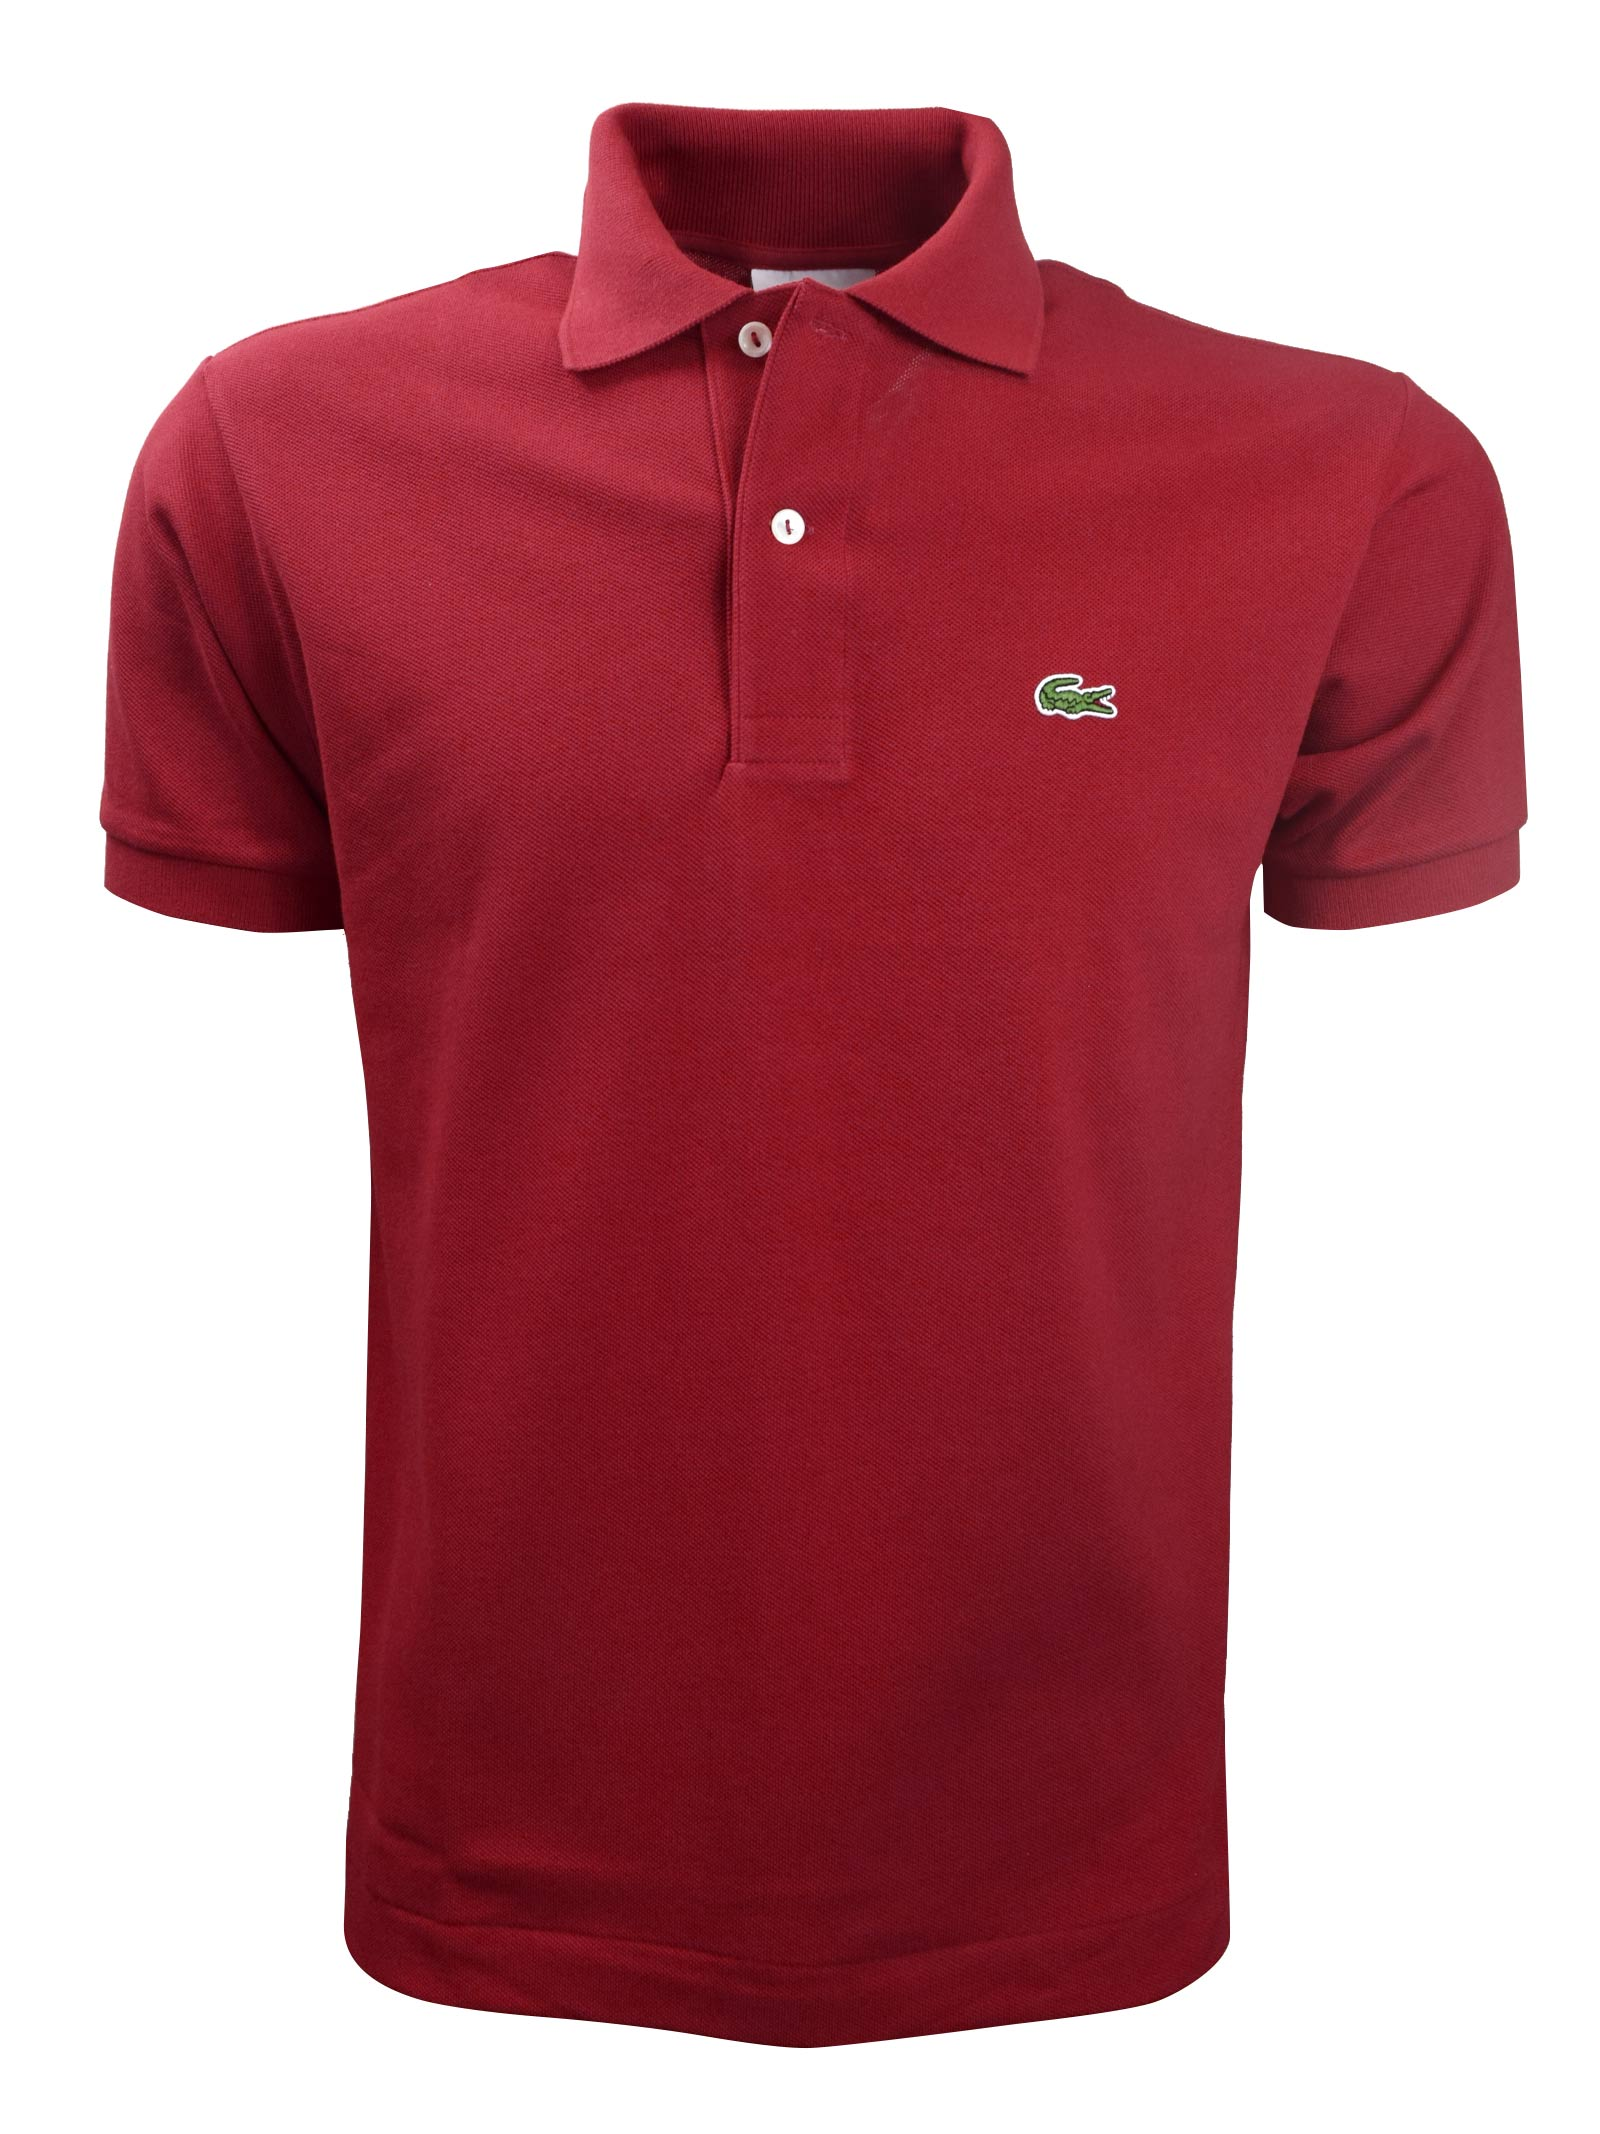 Lacoste classic LACOSTE | Polos | 1212476